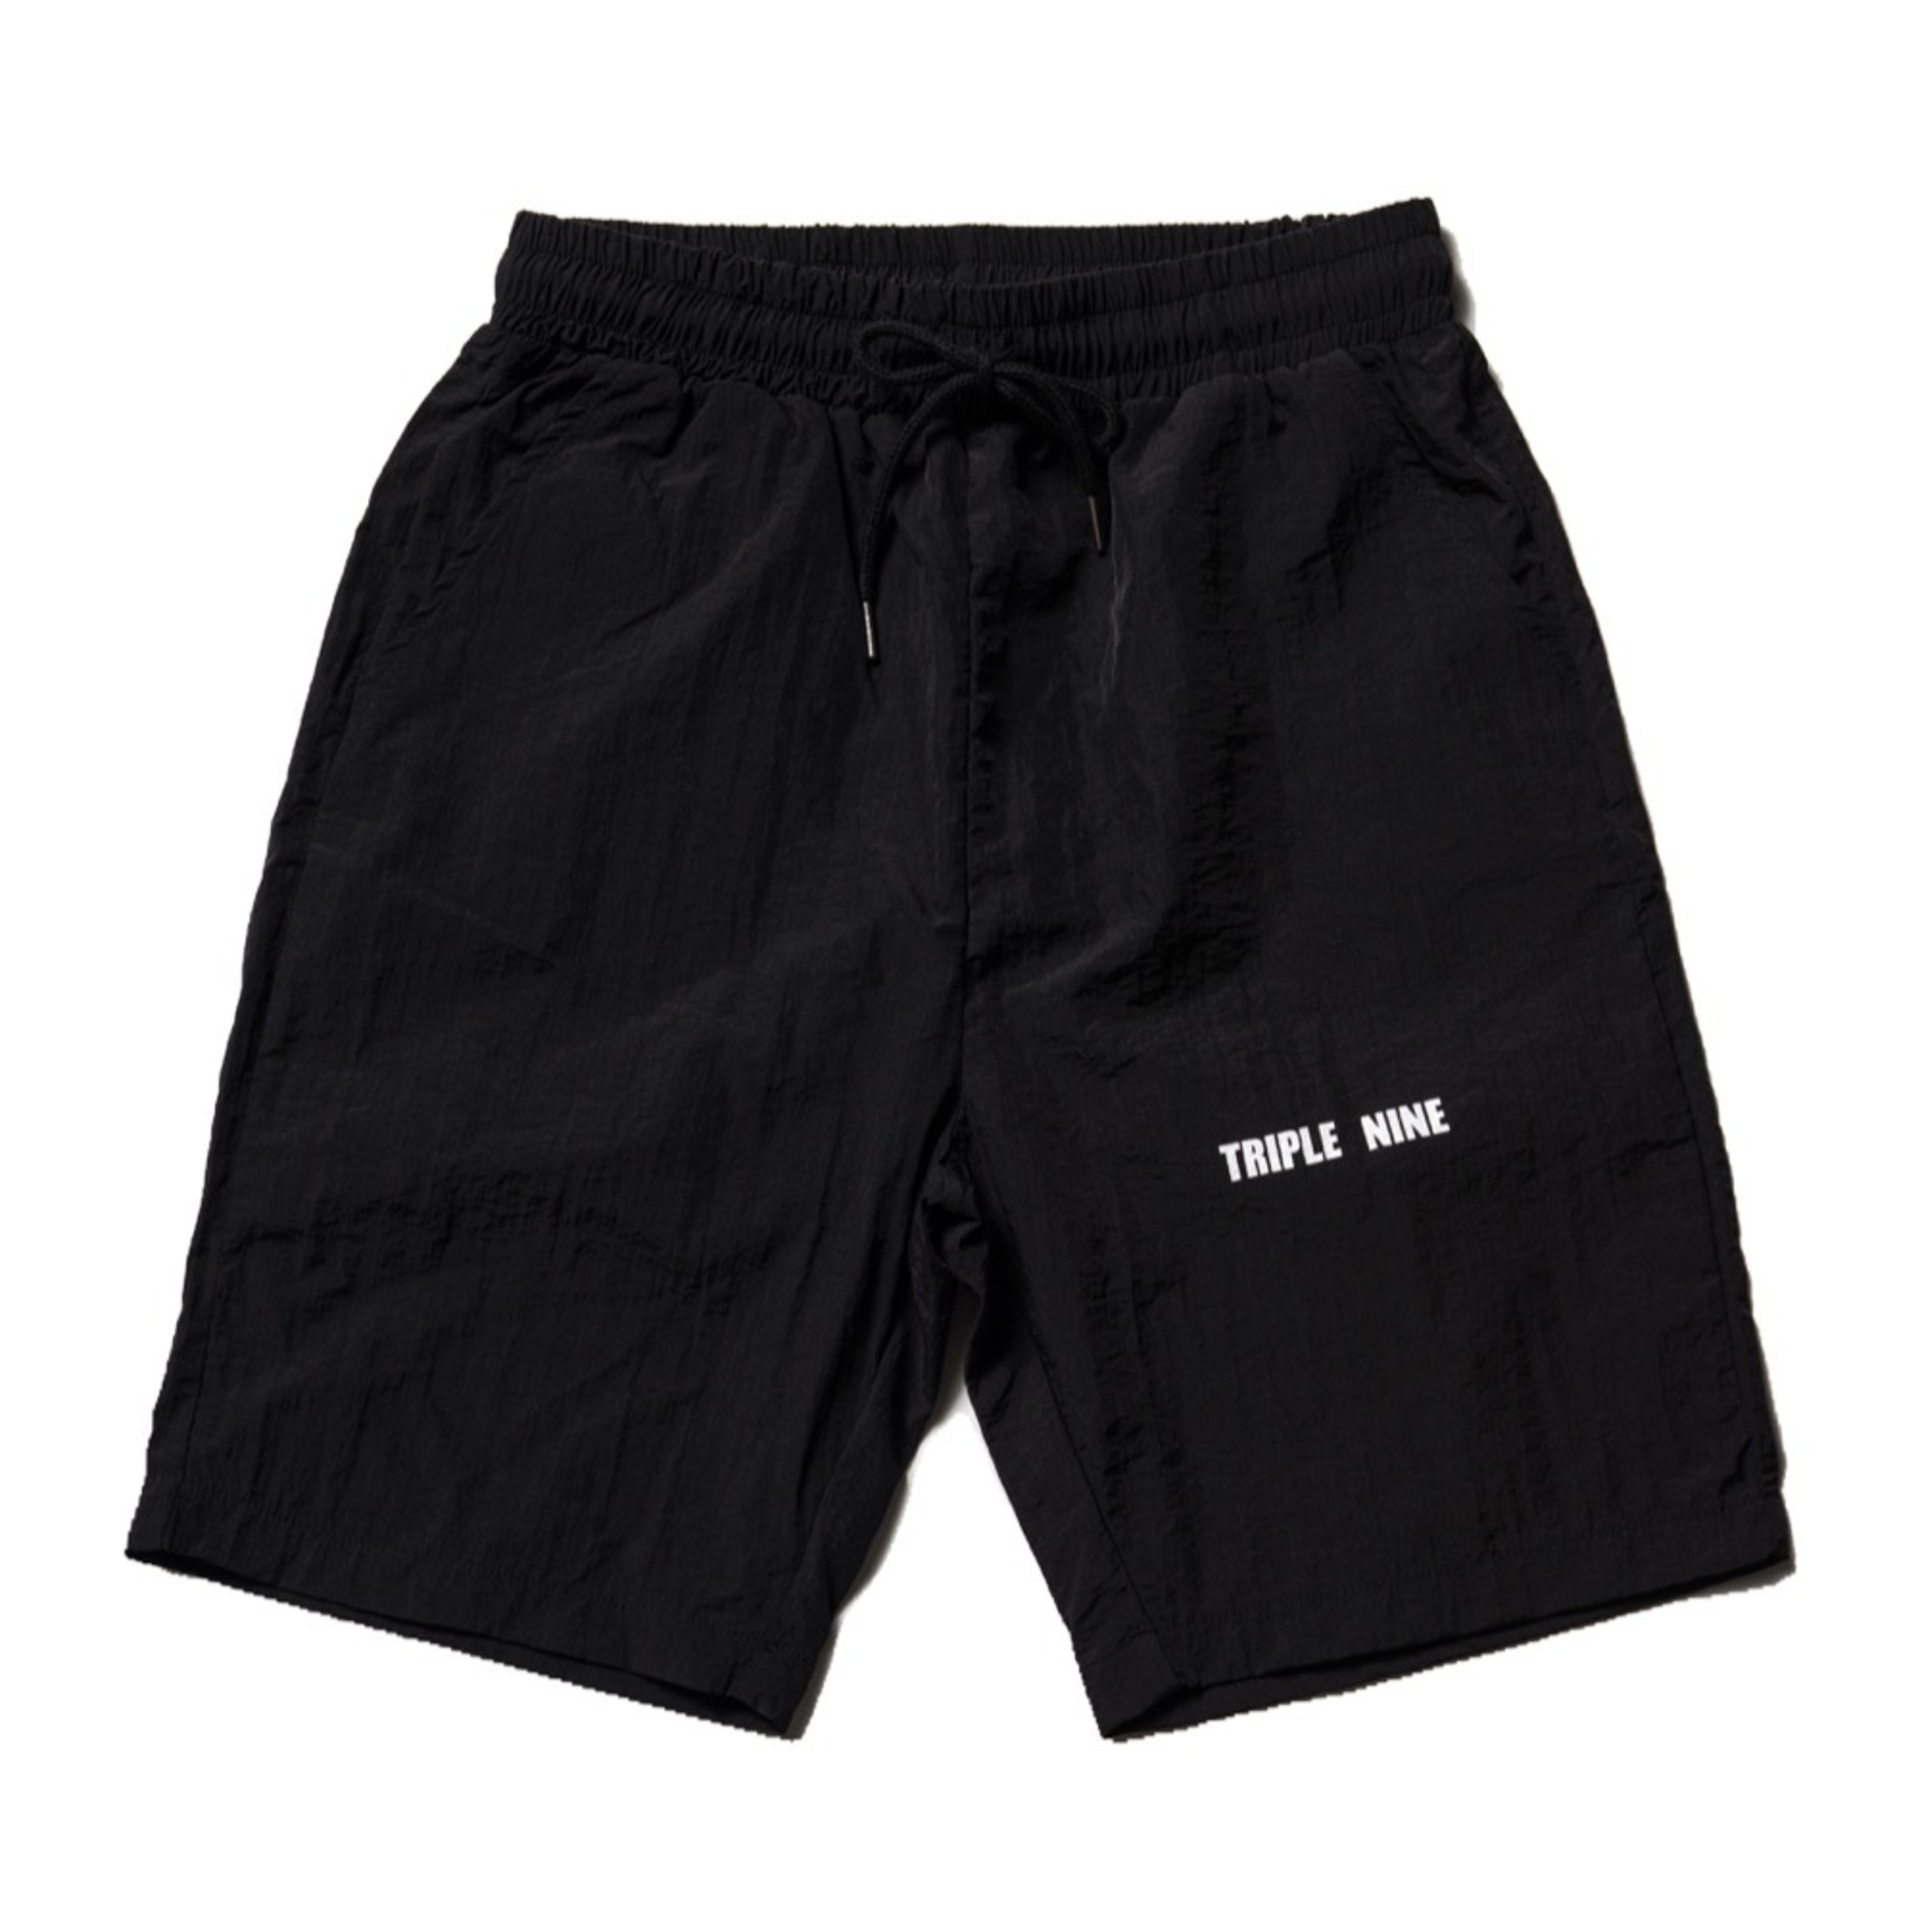 TRIPLE NINE BLACK SHORTS #1